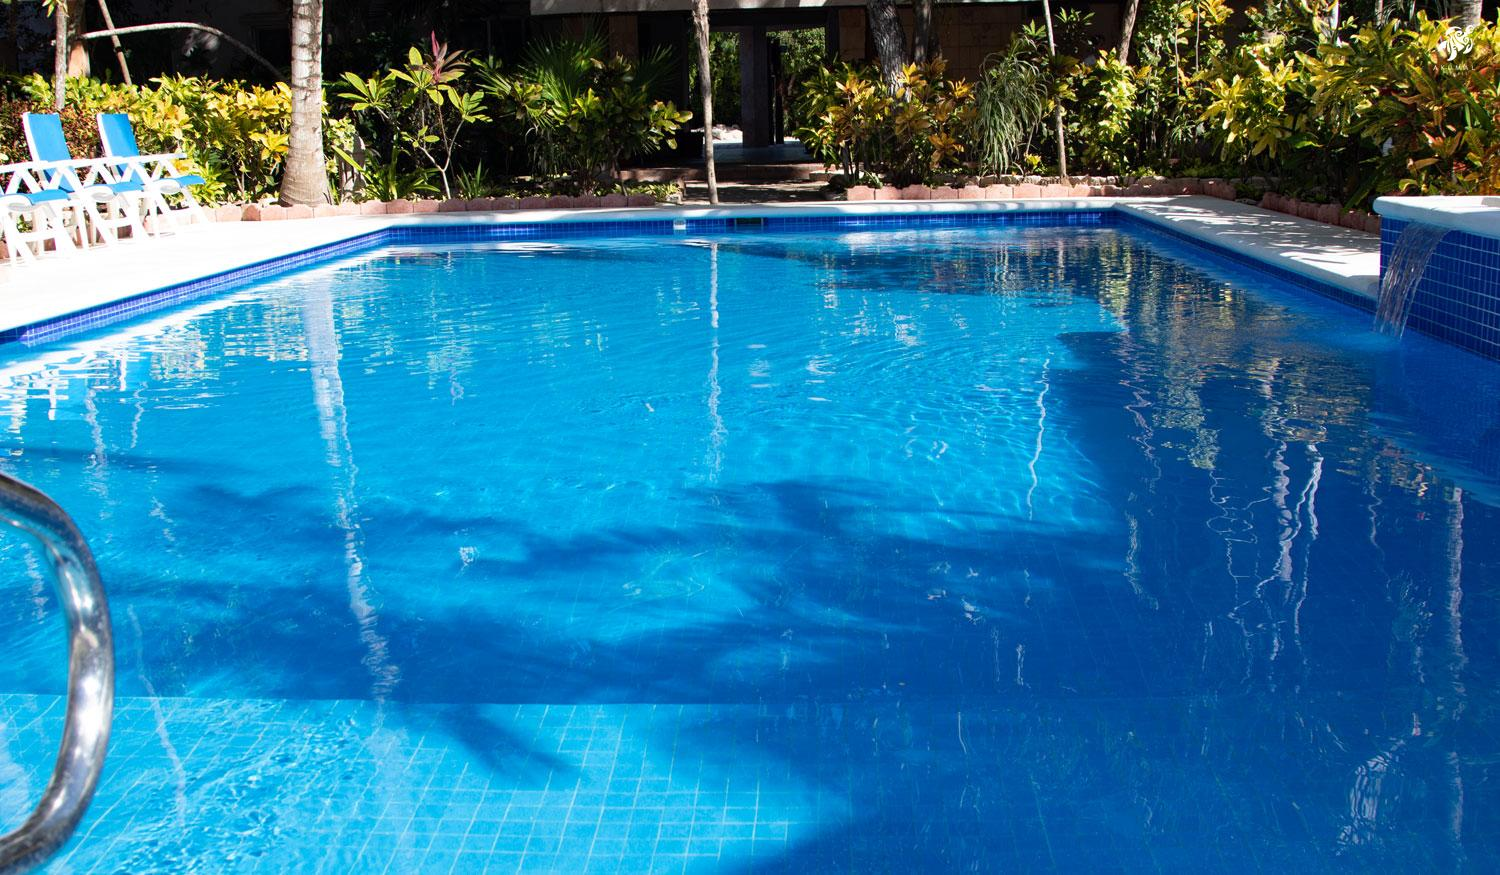 A closeup of our pool and it's sun ledge